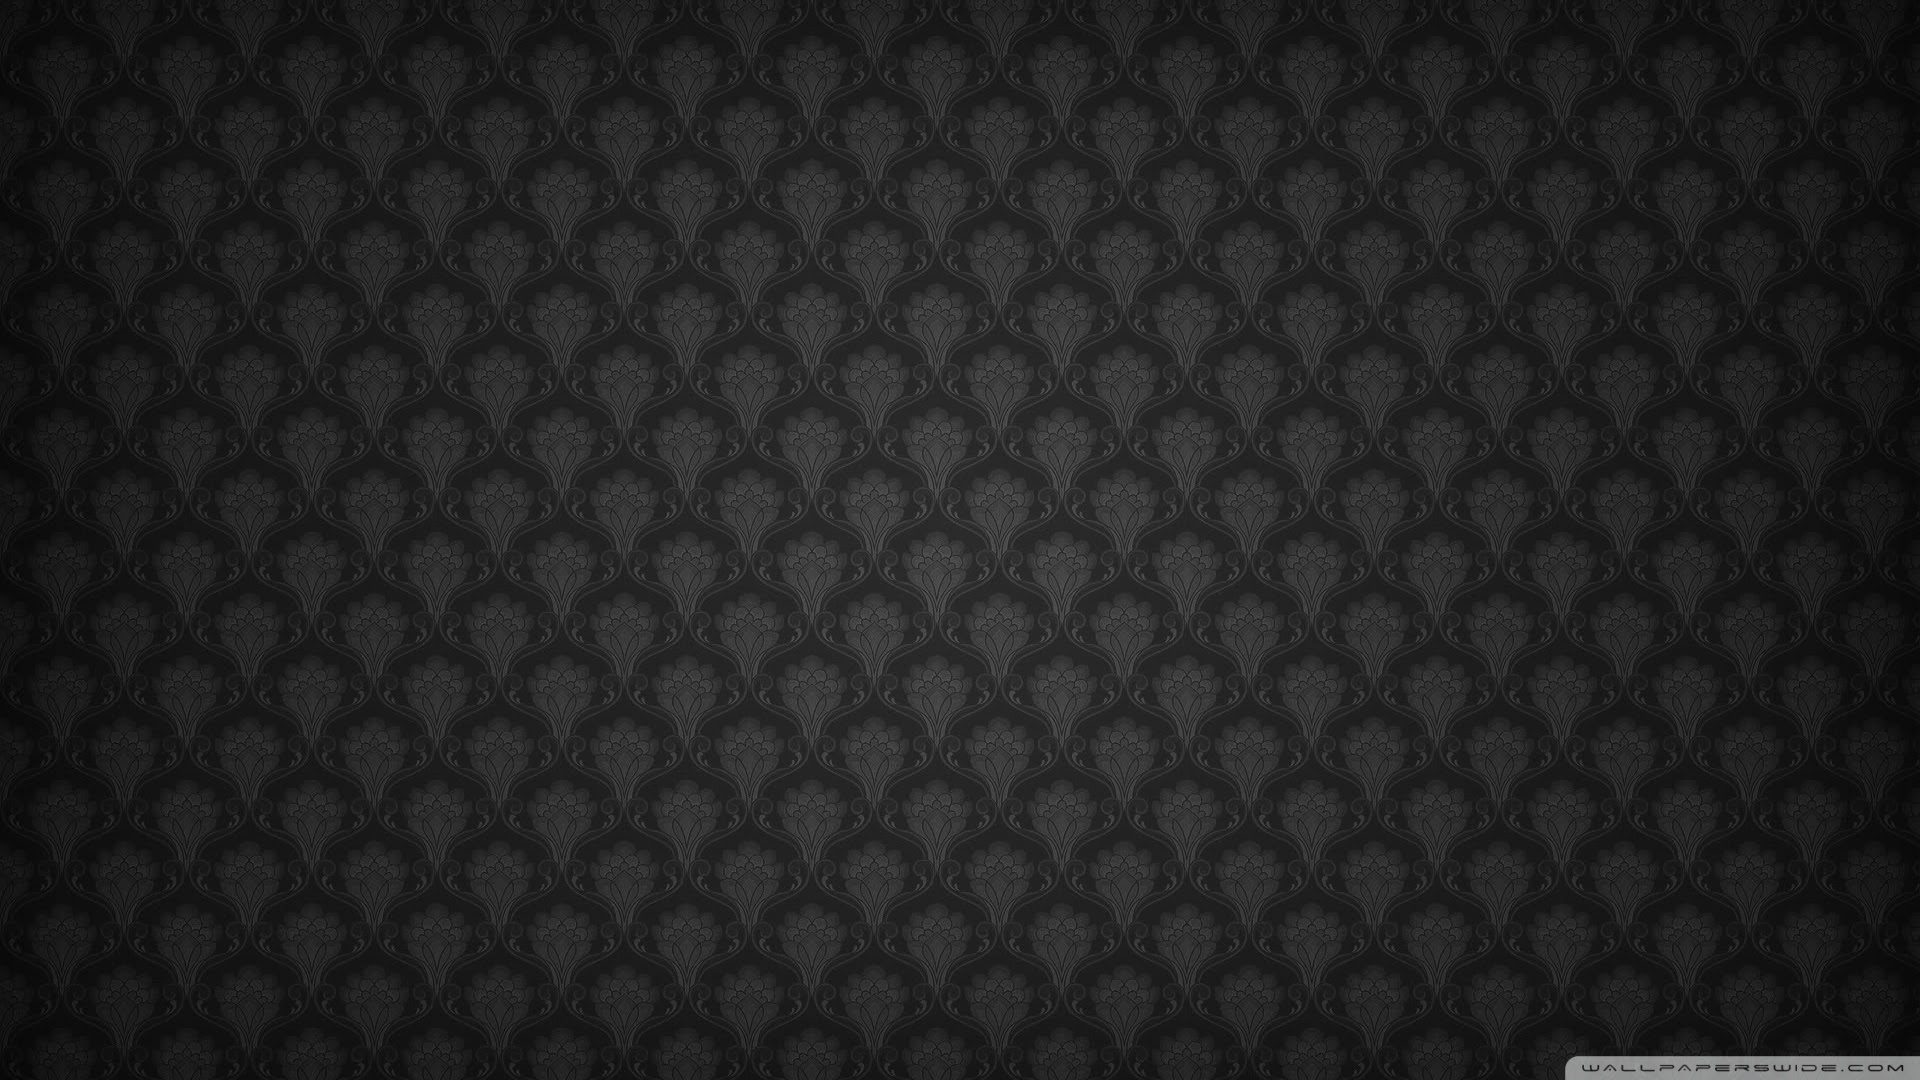 Wallpaper Hd Pattern